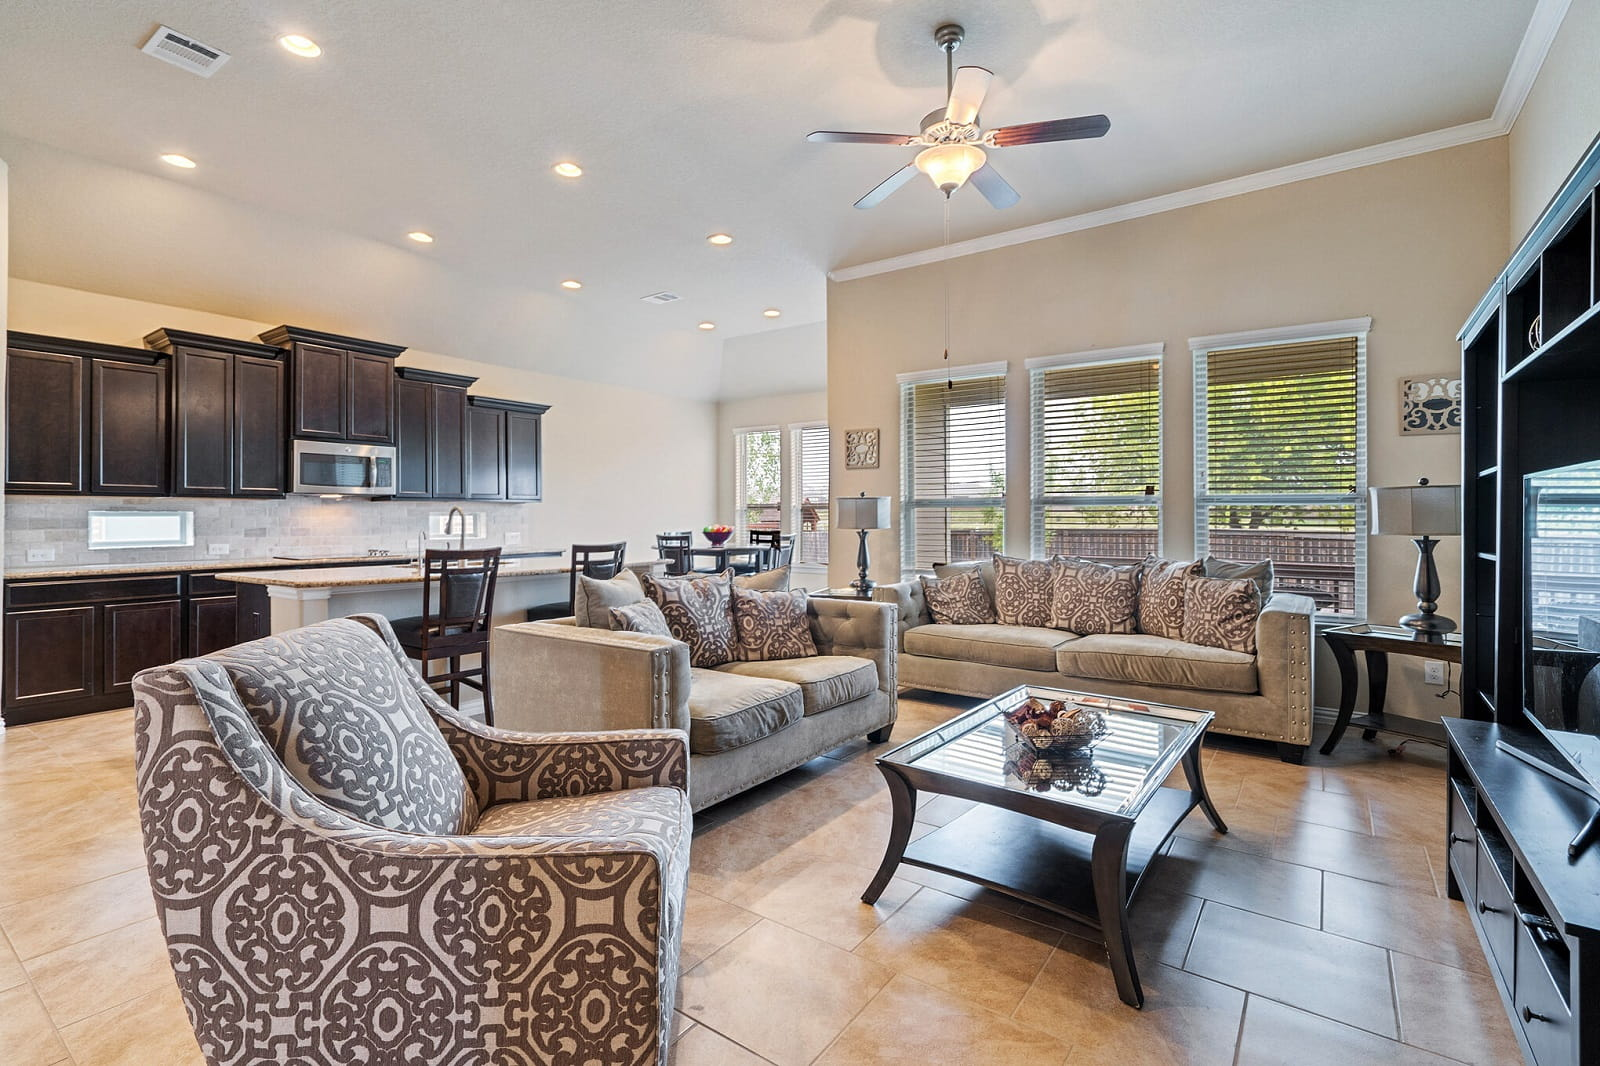 Real Estate Photography in Schertz - TX - Living Area View